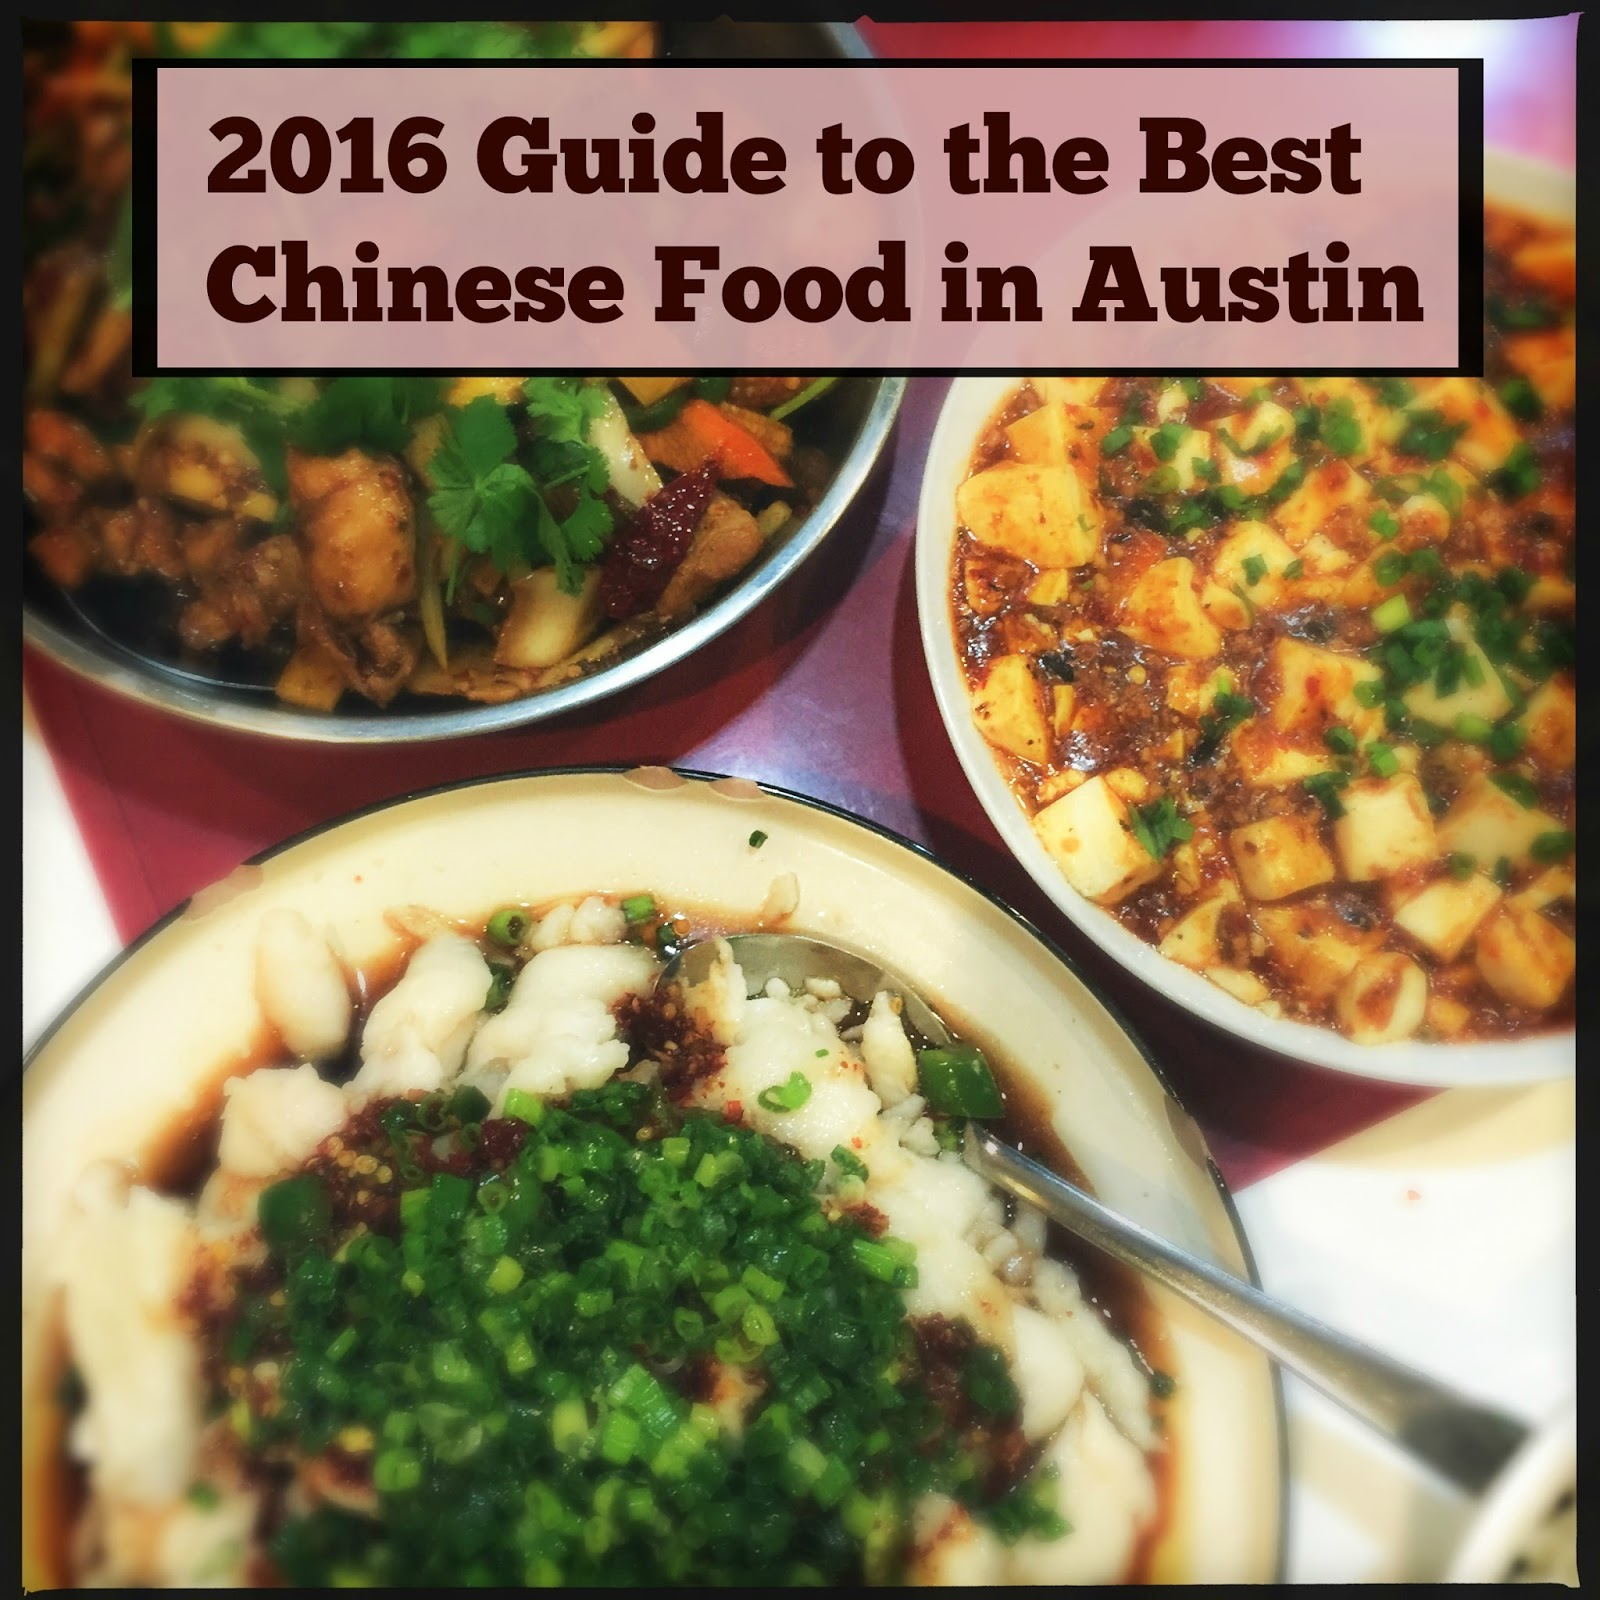 Foodie is the new forty afba 2016 city guide best chinese food in afba 2016 city guide best chinese food in austin forumfinder Gallery